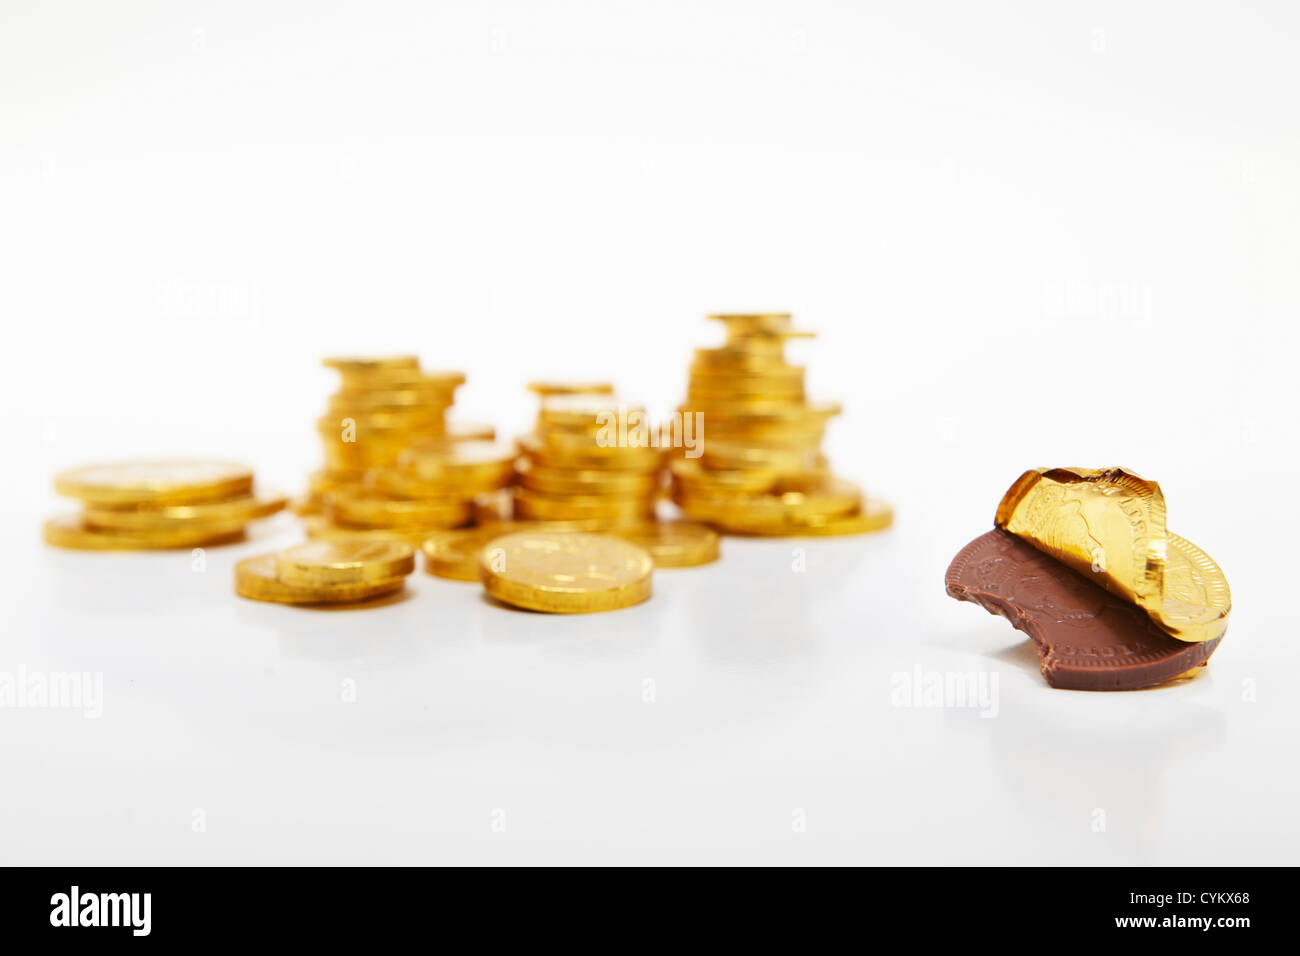 Unwrapped chocolate gold coin - Stock Image